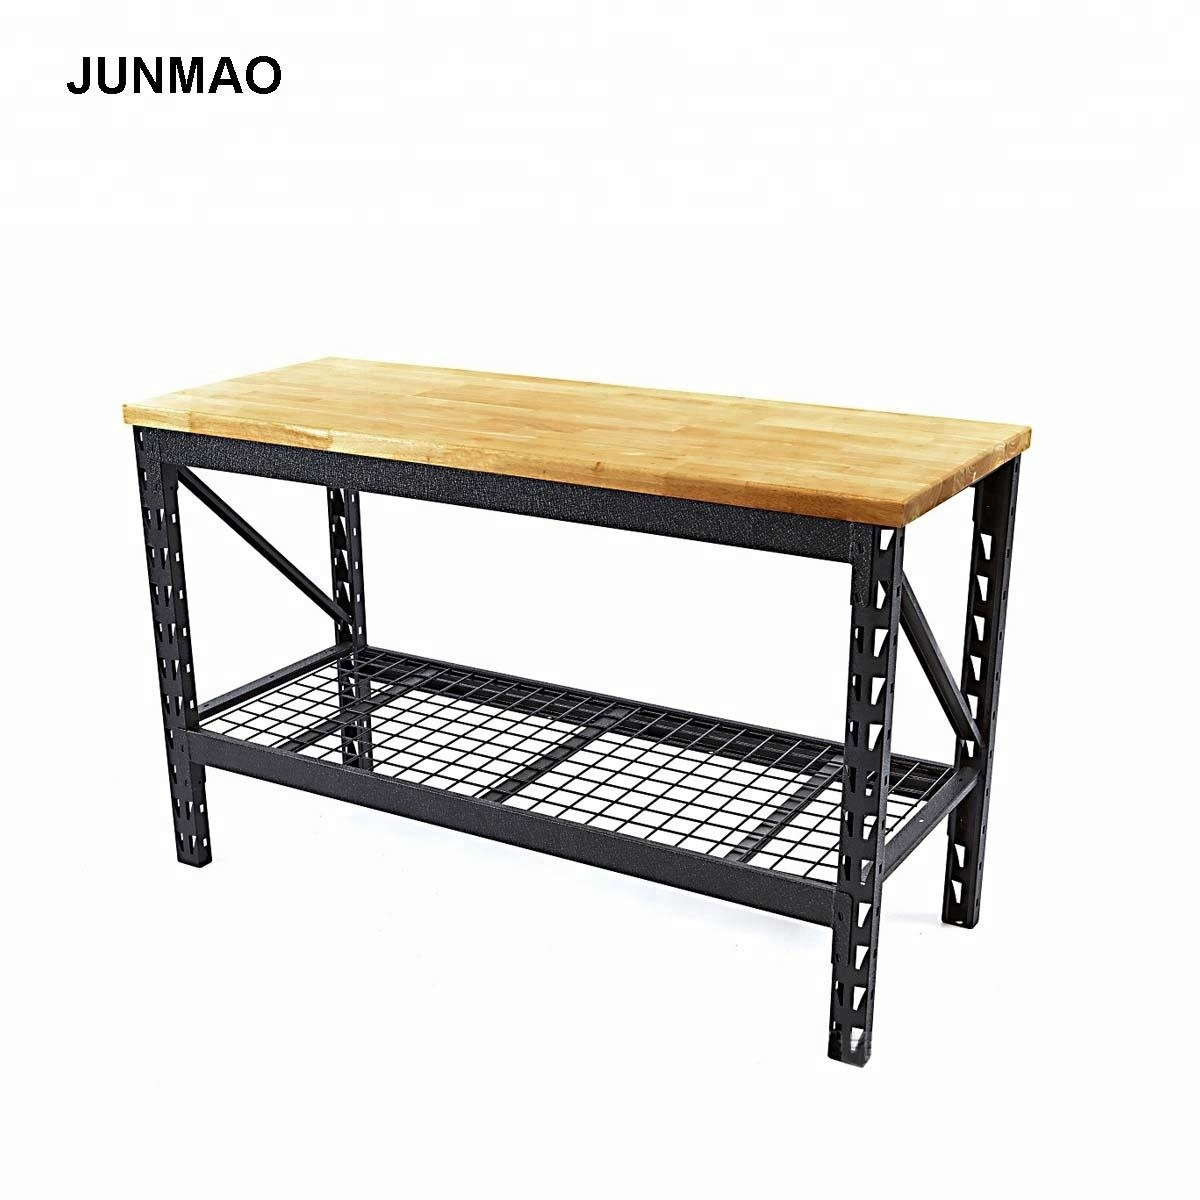 Diy Hardwood Top Adjustable Steel Legs Heavy Duty Garage Workbench Buy Heavy Duty Garage Workbench Garage Workbench Heavy Duty Workbench Product On Alibaba Com